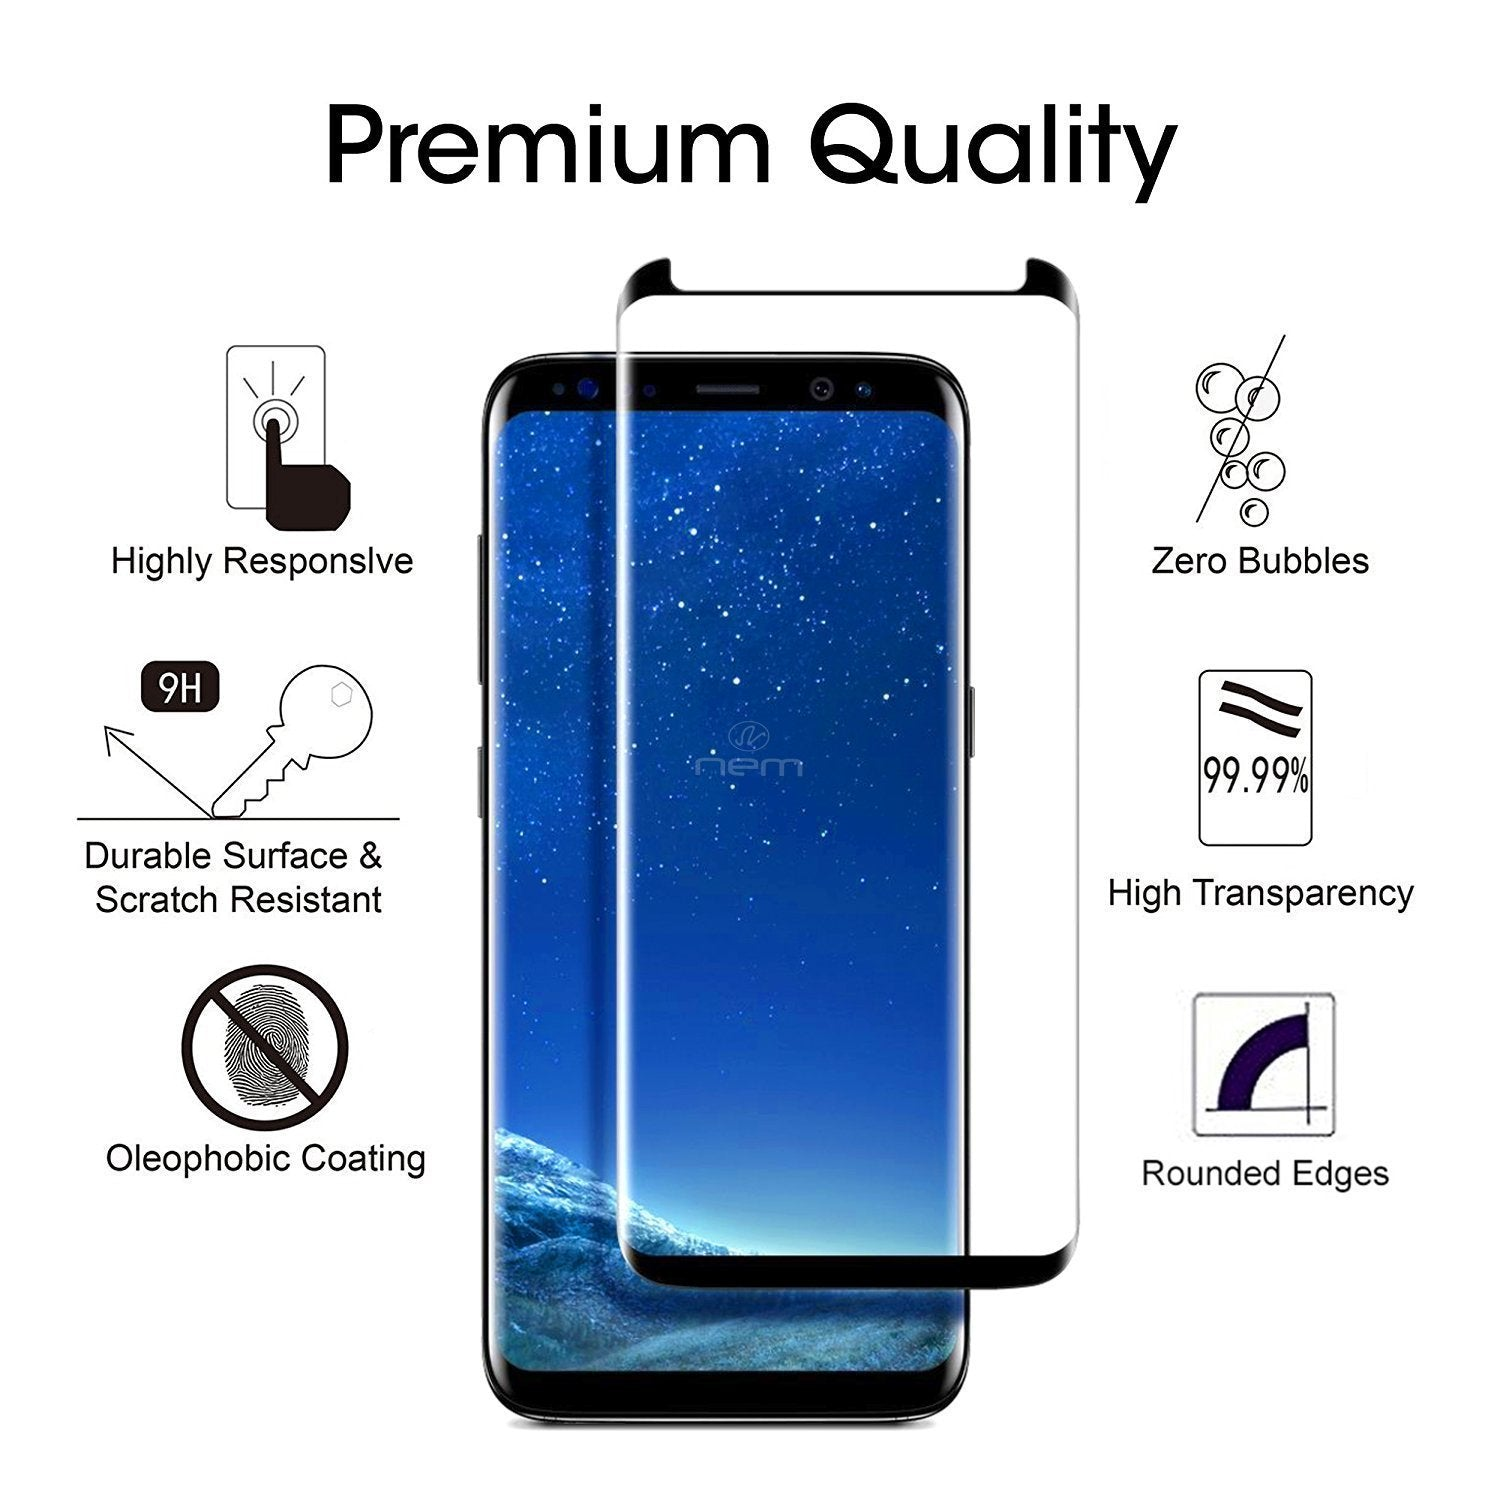 Samsung Galaxy S8 3D Curved Tempered Glass Screen Protector by Modes